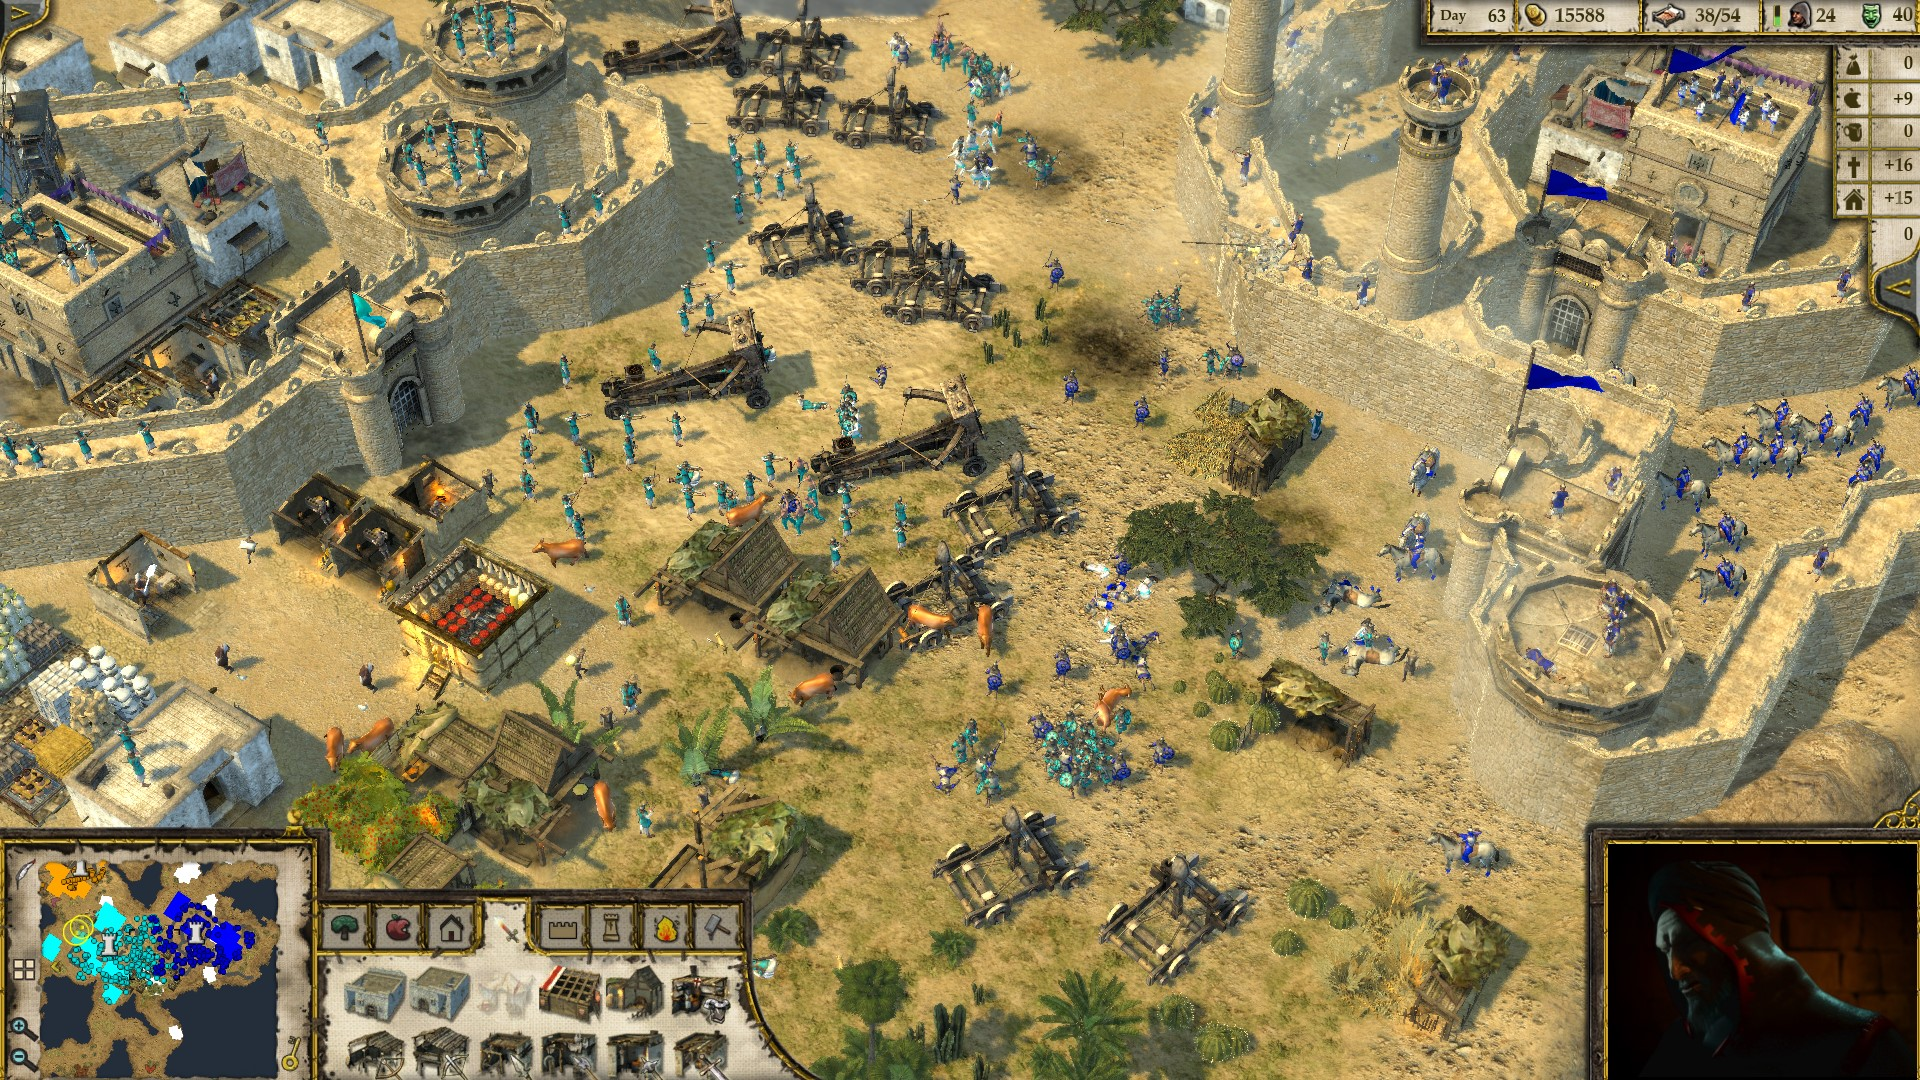 Stronghold Crusader 2 (Steam Key, Region Free) + Gift